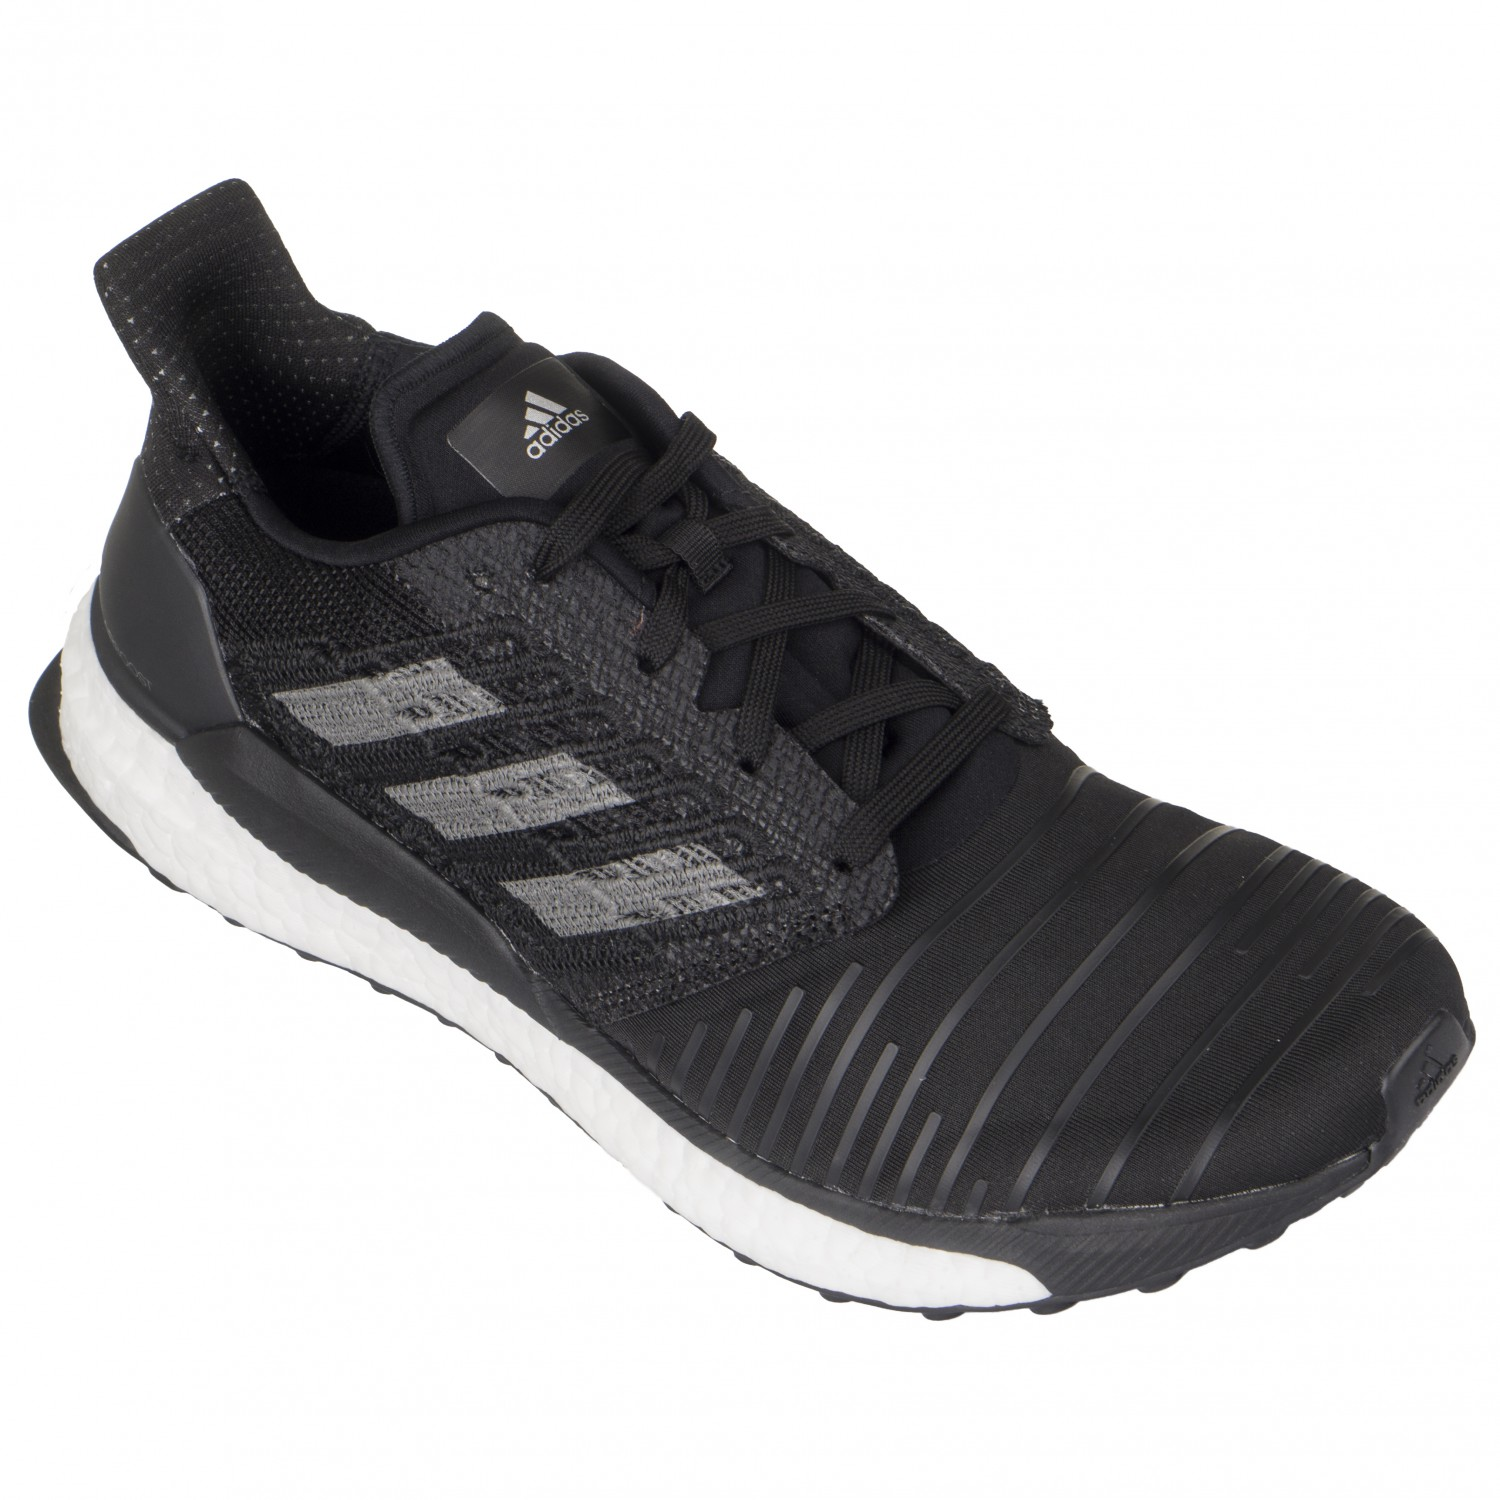 b9be5548fbe05 Adidas Solar Boost - Running Shoes Men s